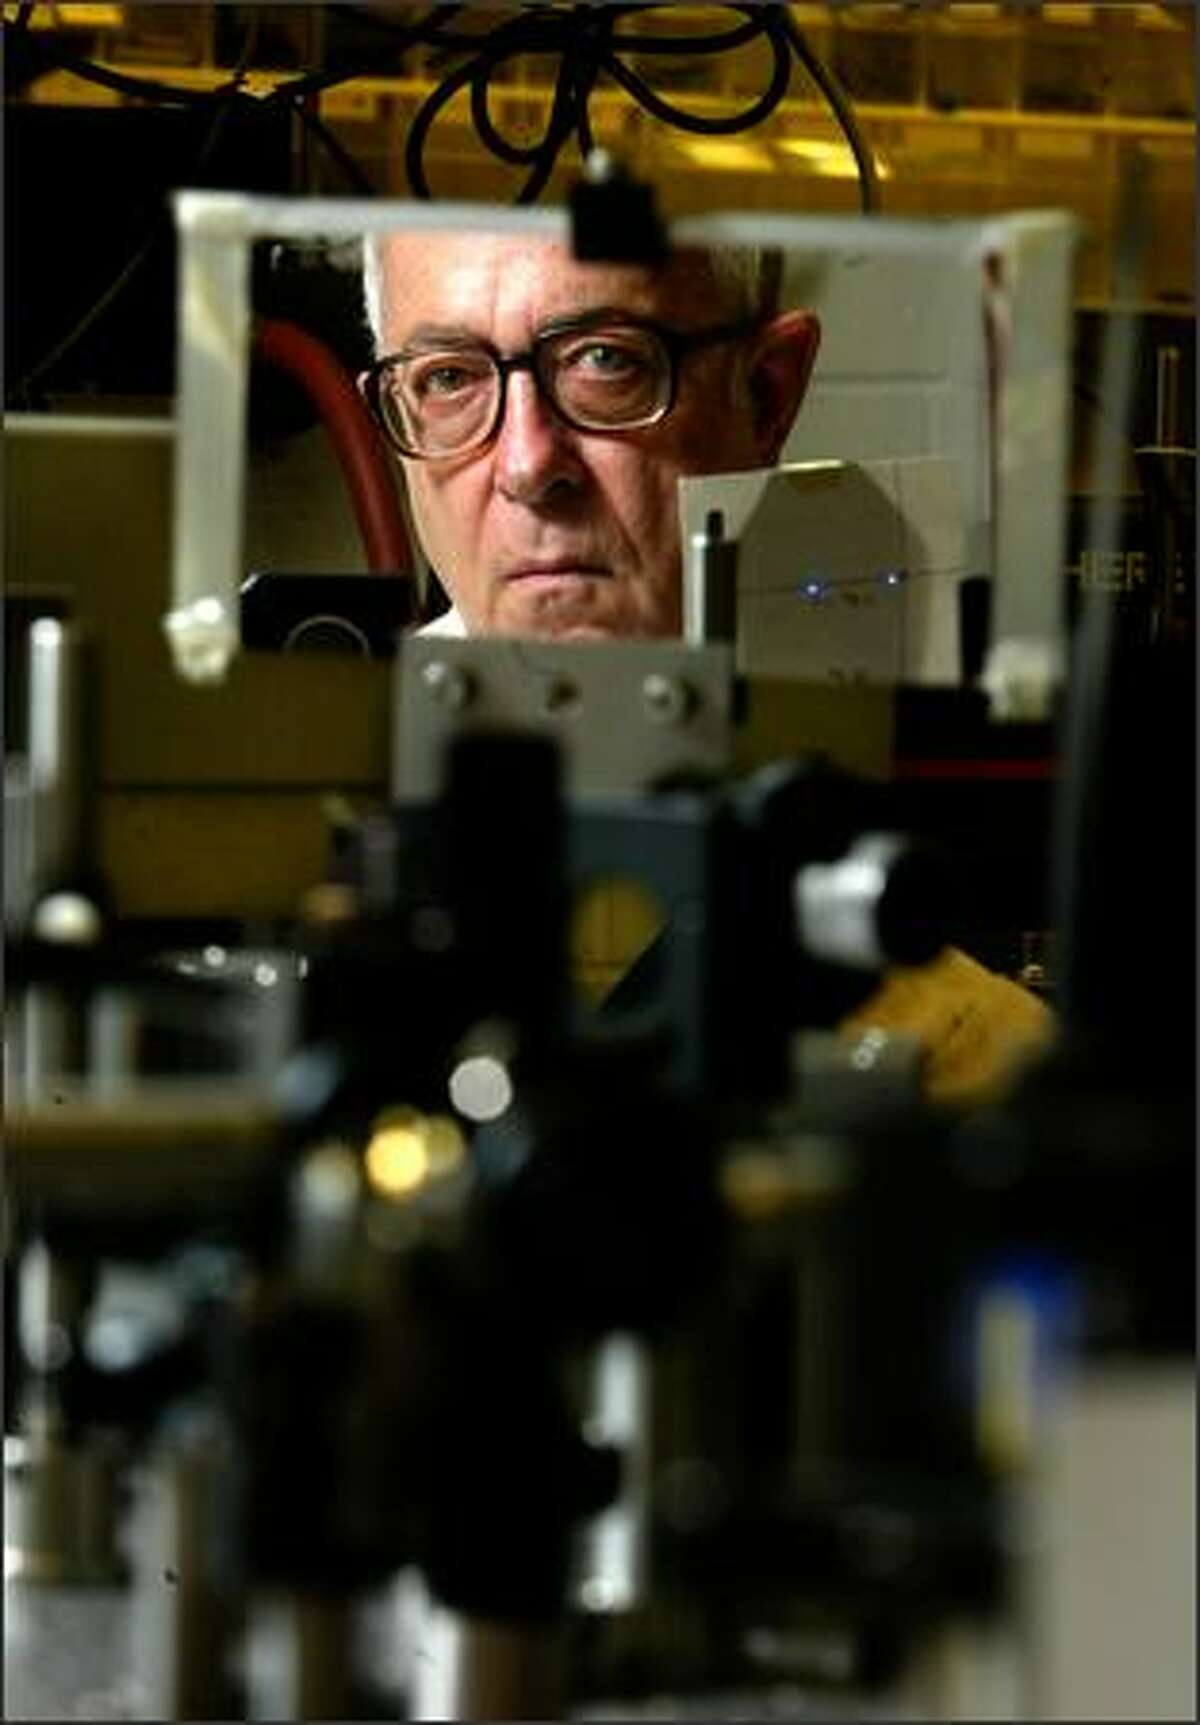 John Cramer, a physicist at the University of Washington, is reflected among some of the materials he's using for an experiment that challenges the traditional concept of time. The public has donated $35,000 to his research.